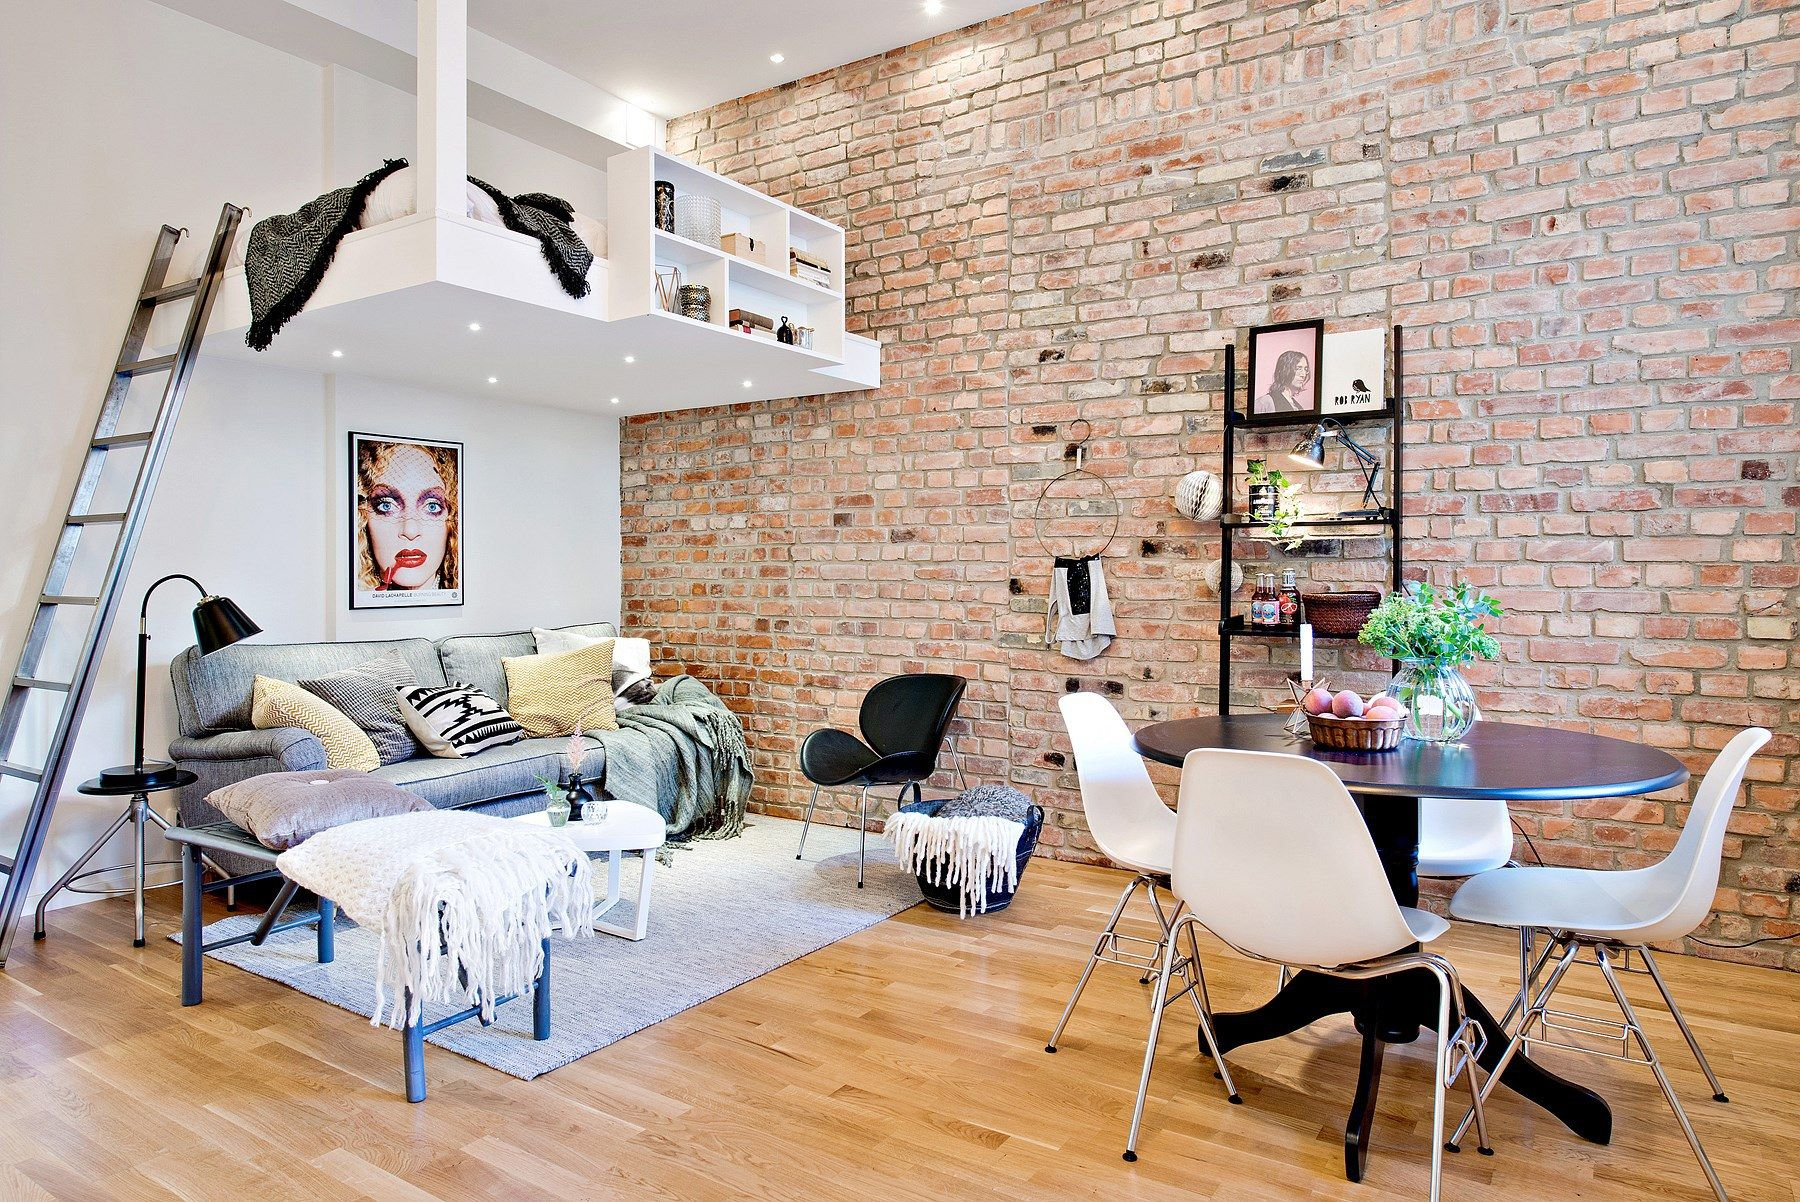 Steinwand Wohnzimmer Mietwohnung Small Apartment White Eames Dss Chairs And Black Swan